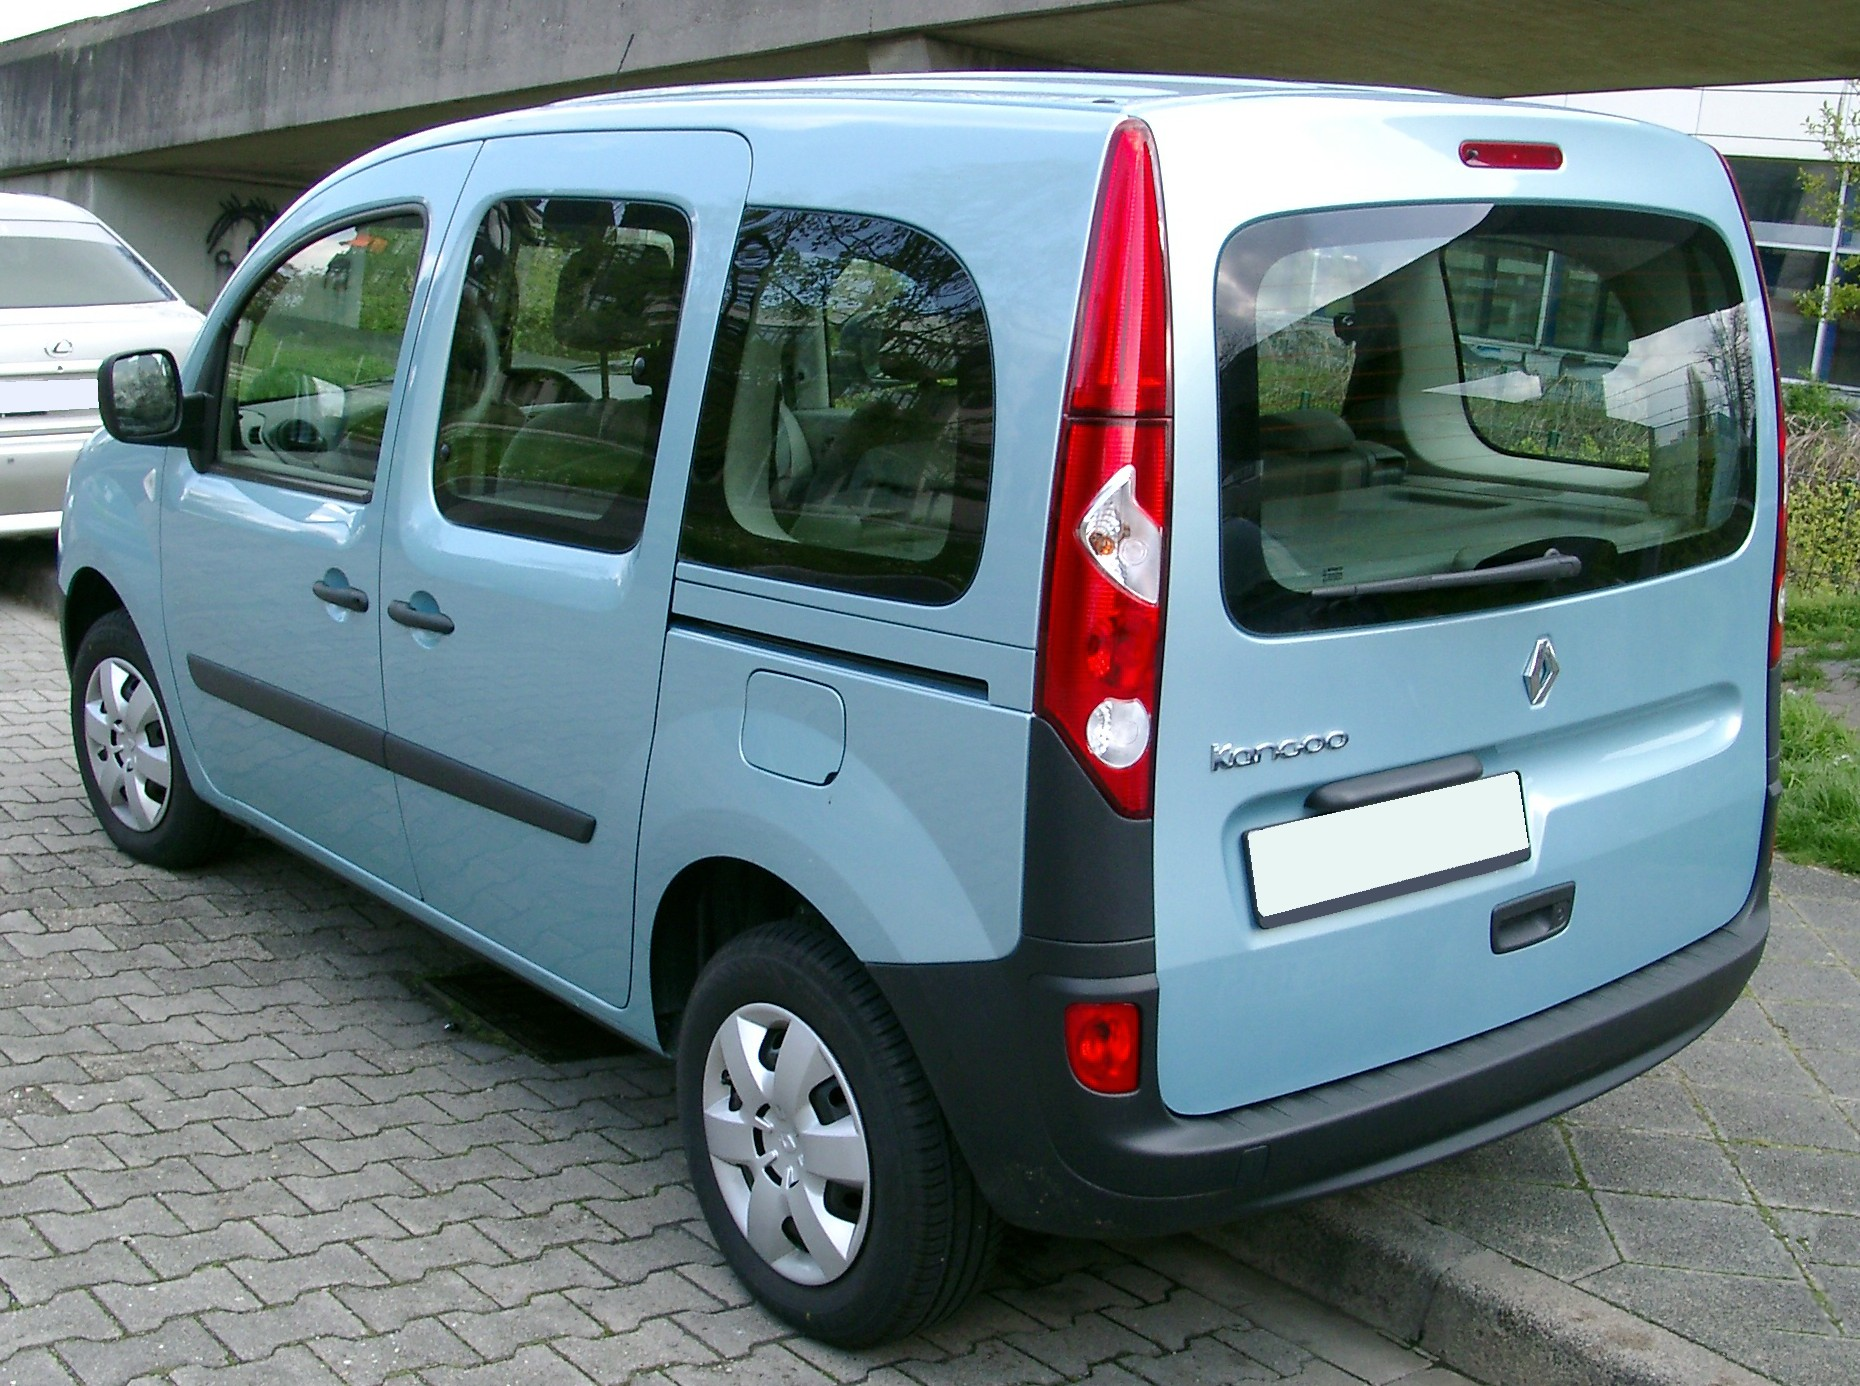 file renault kangoo rear wikimedia commons. Black Bedroom Furniture Sets. Home Design Ideas